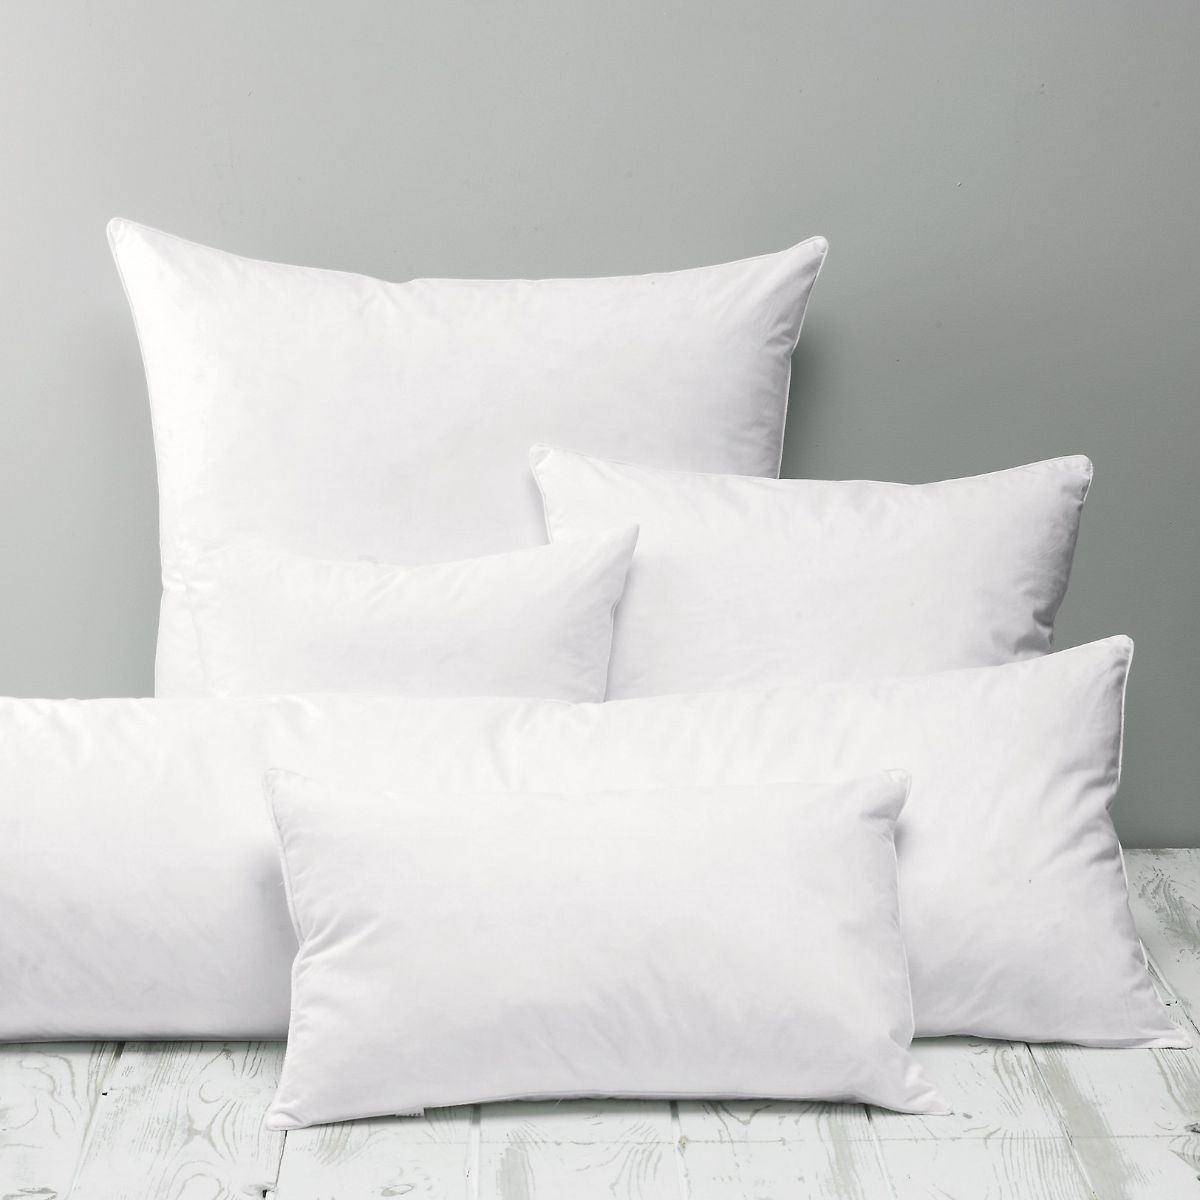 Multiple white pillows